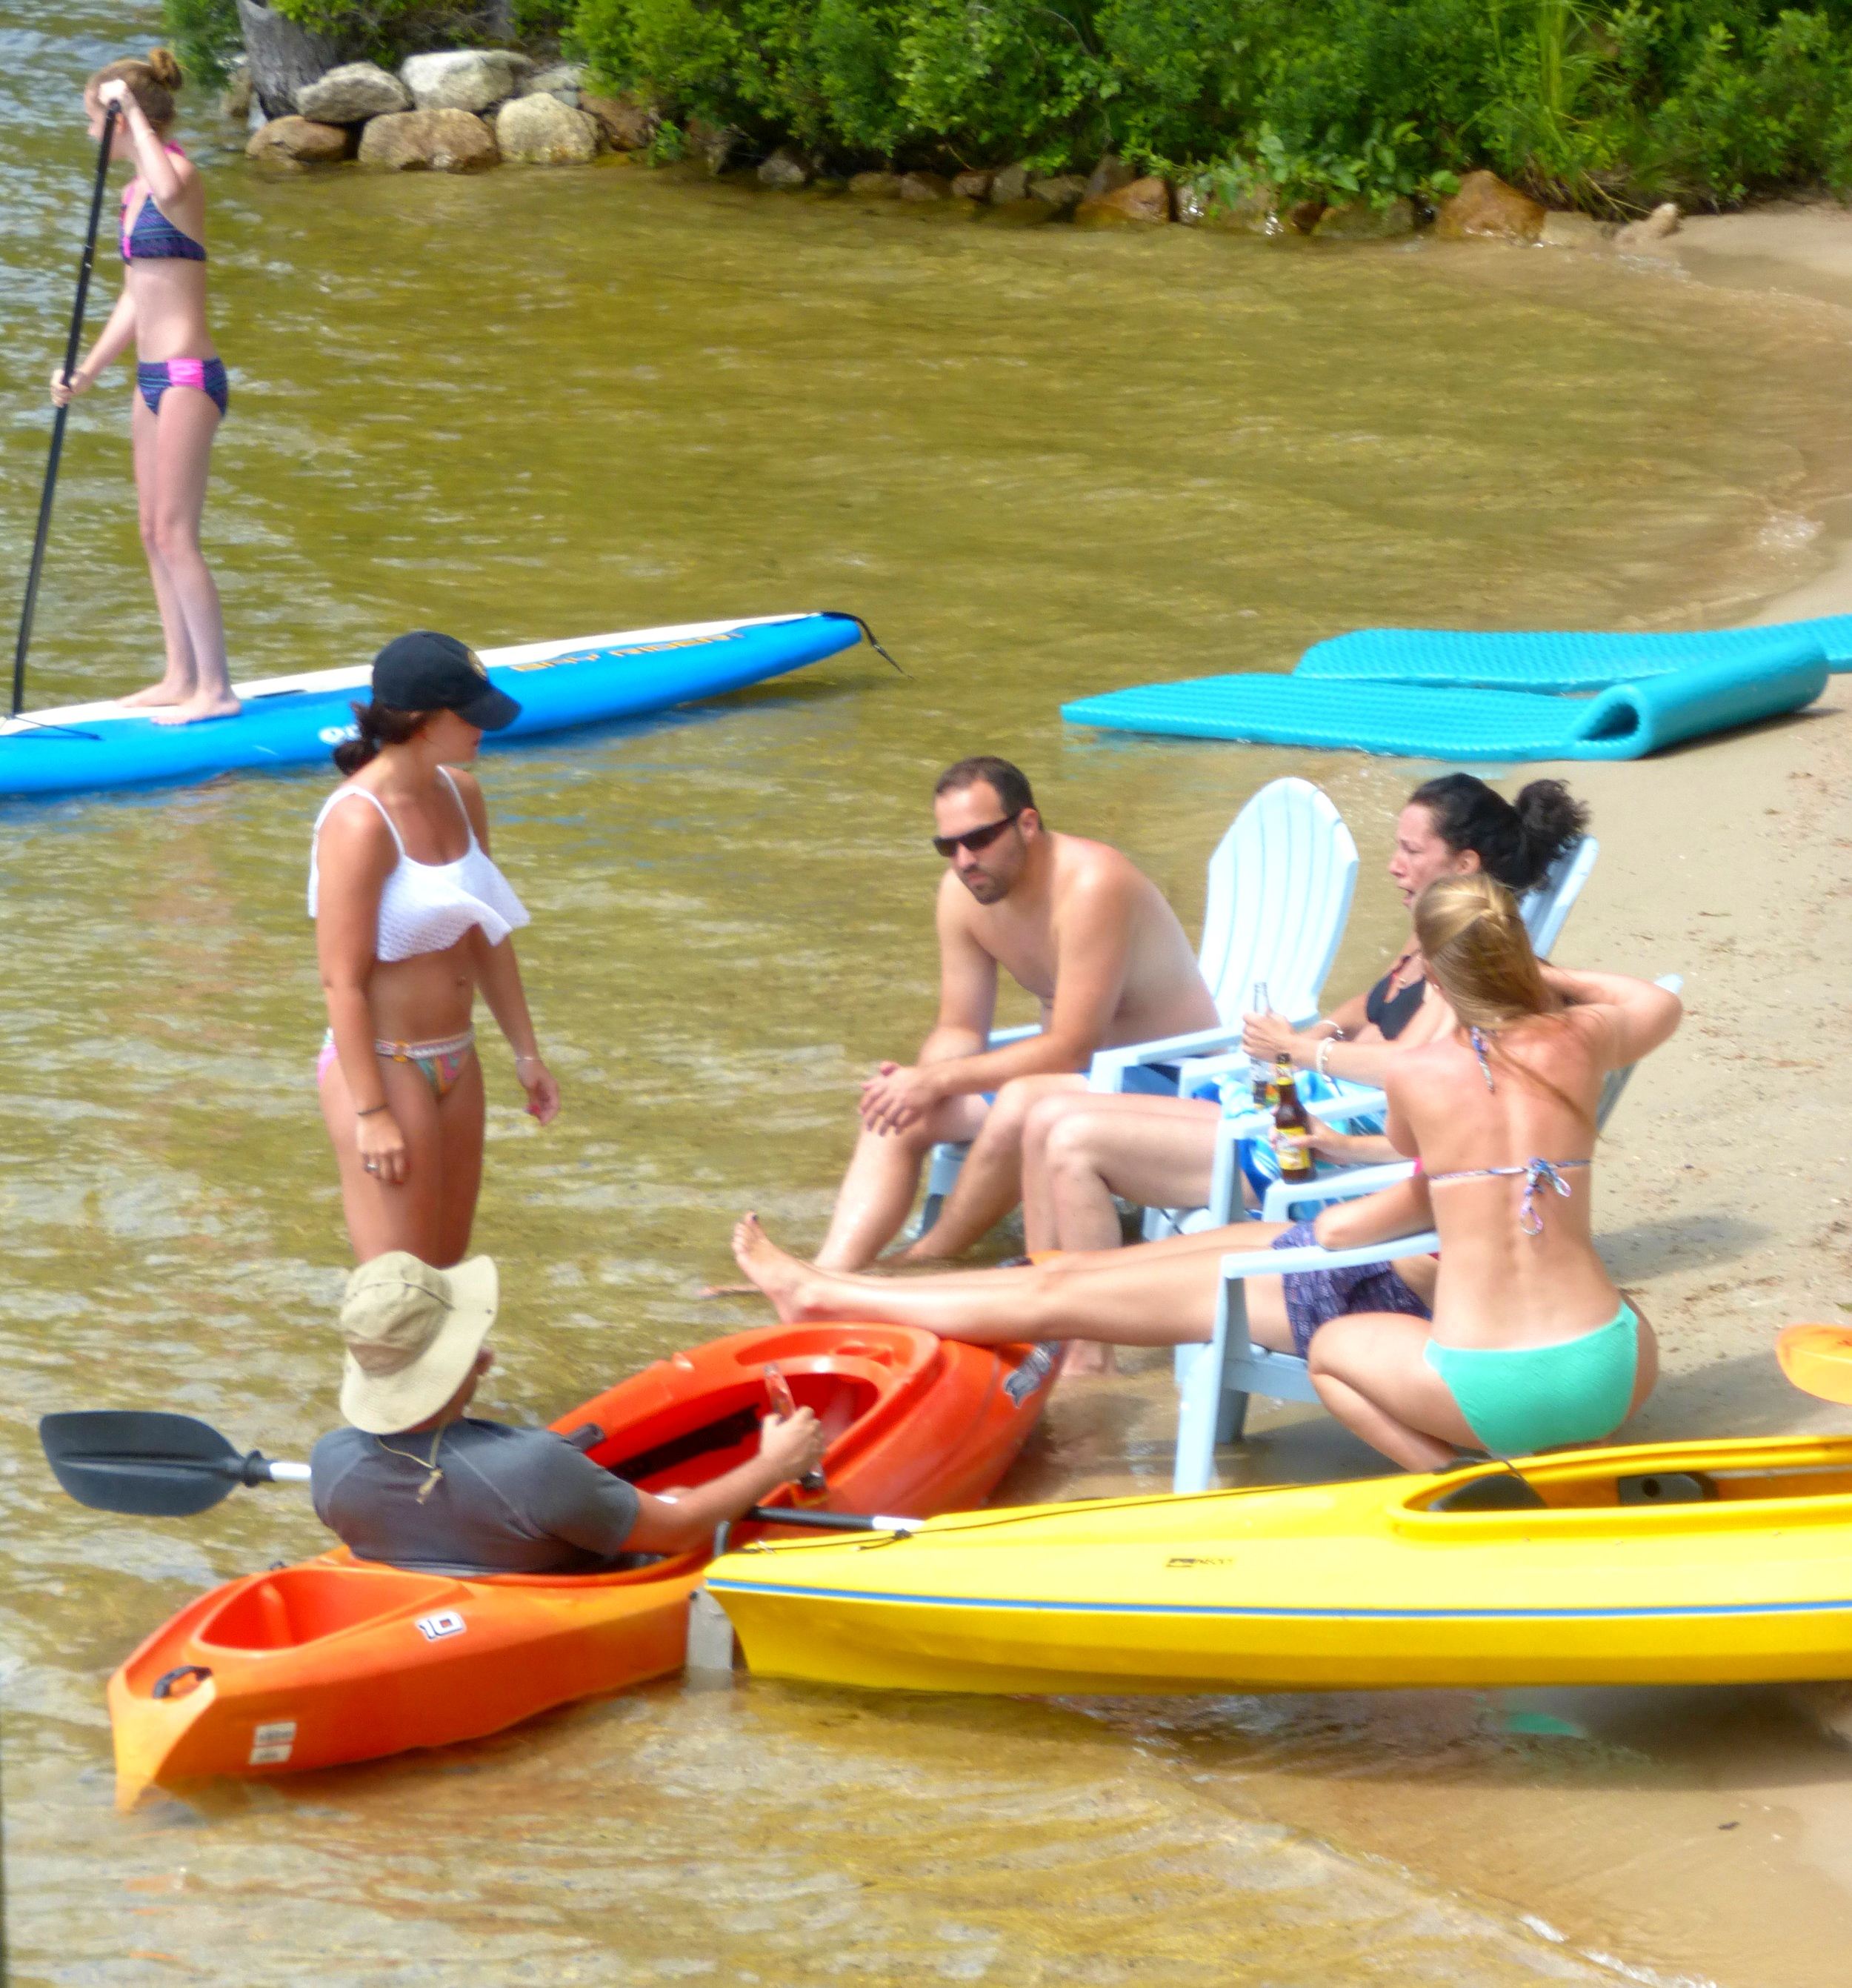 Activities-Water with kayaks+paddle board.jpg